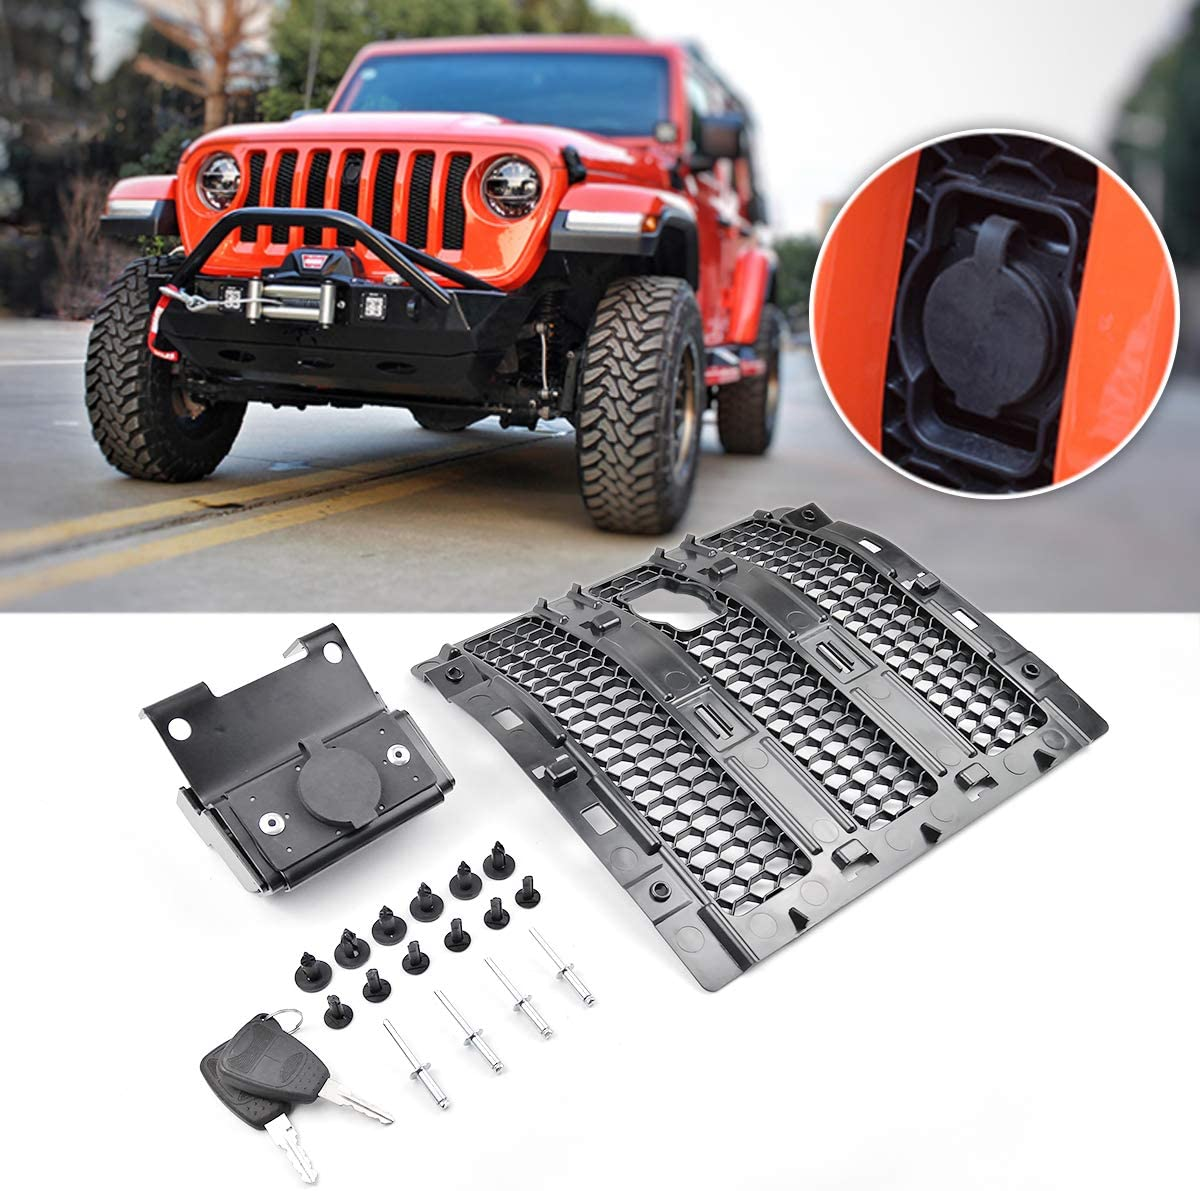 2019 Sahara 2020 Jeep Wrangler JL JLU Rubicon Come with Key XBEEK Hood Lock of Jeep Anti-Theft Security Device for 2018 Sport Accessories